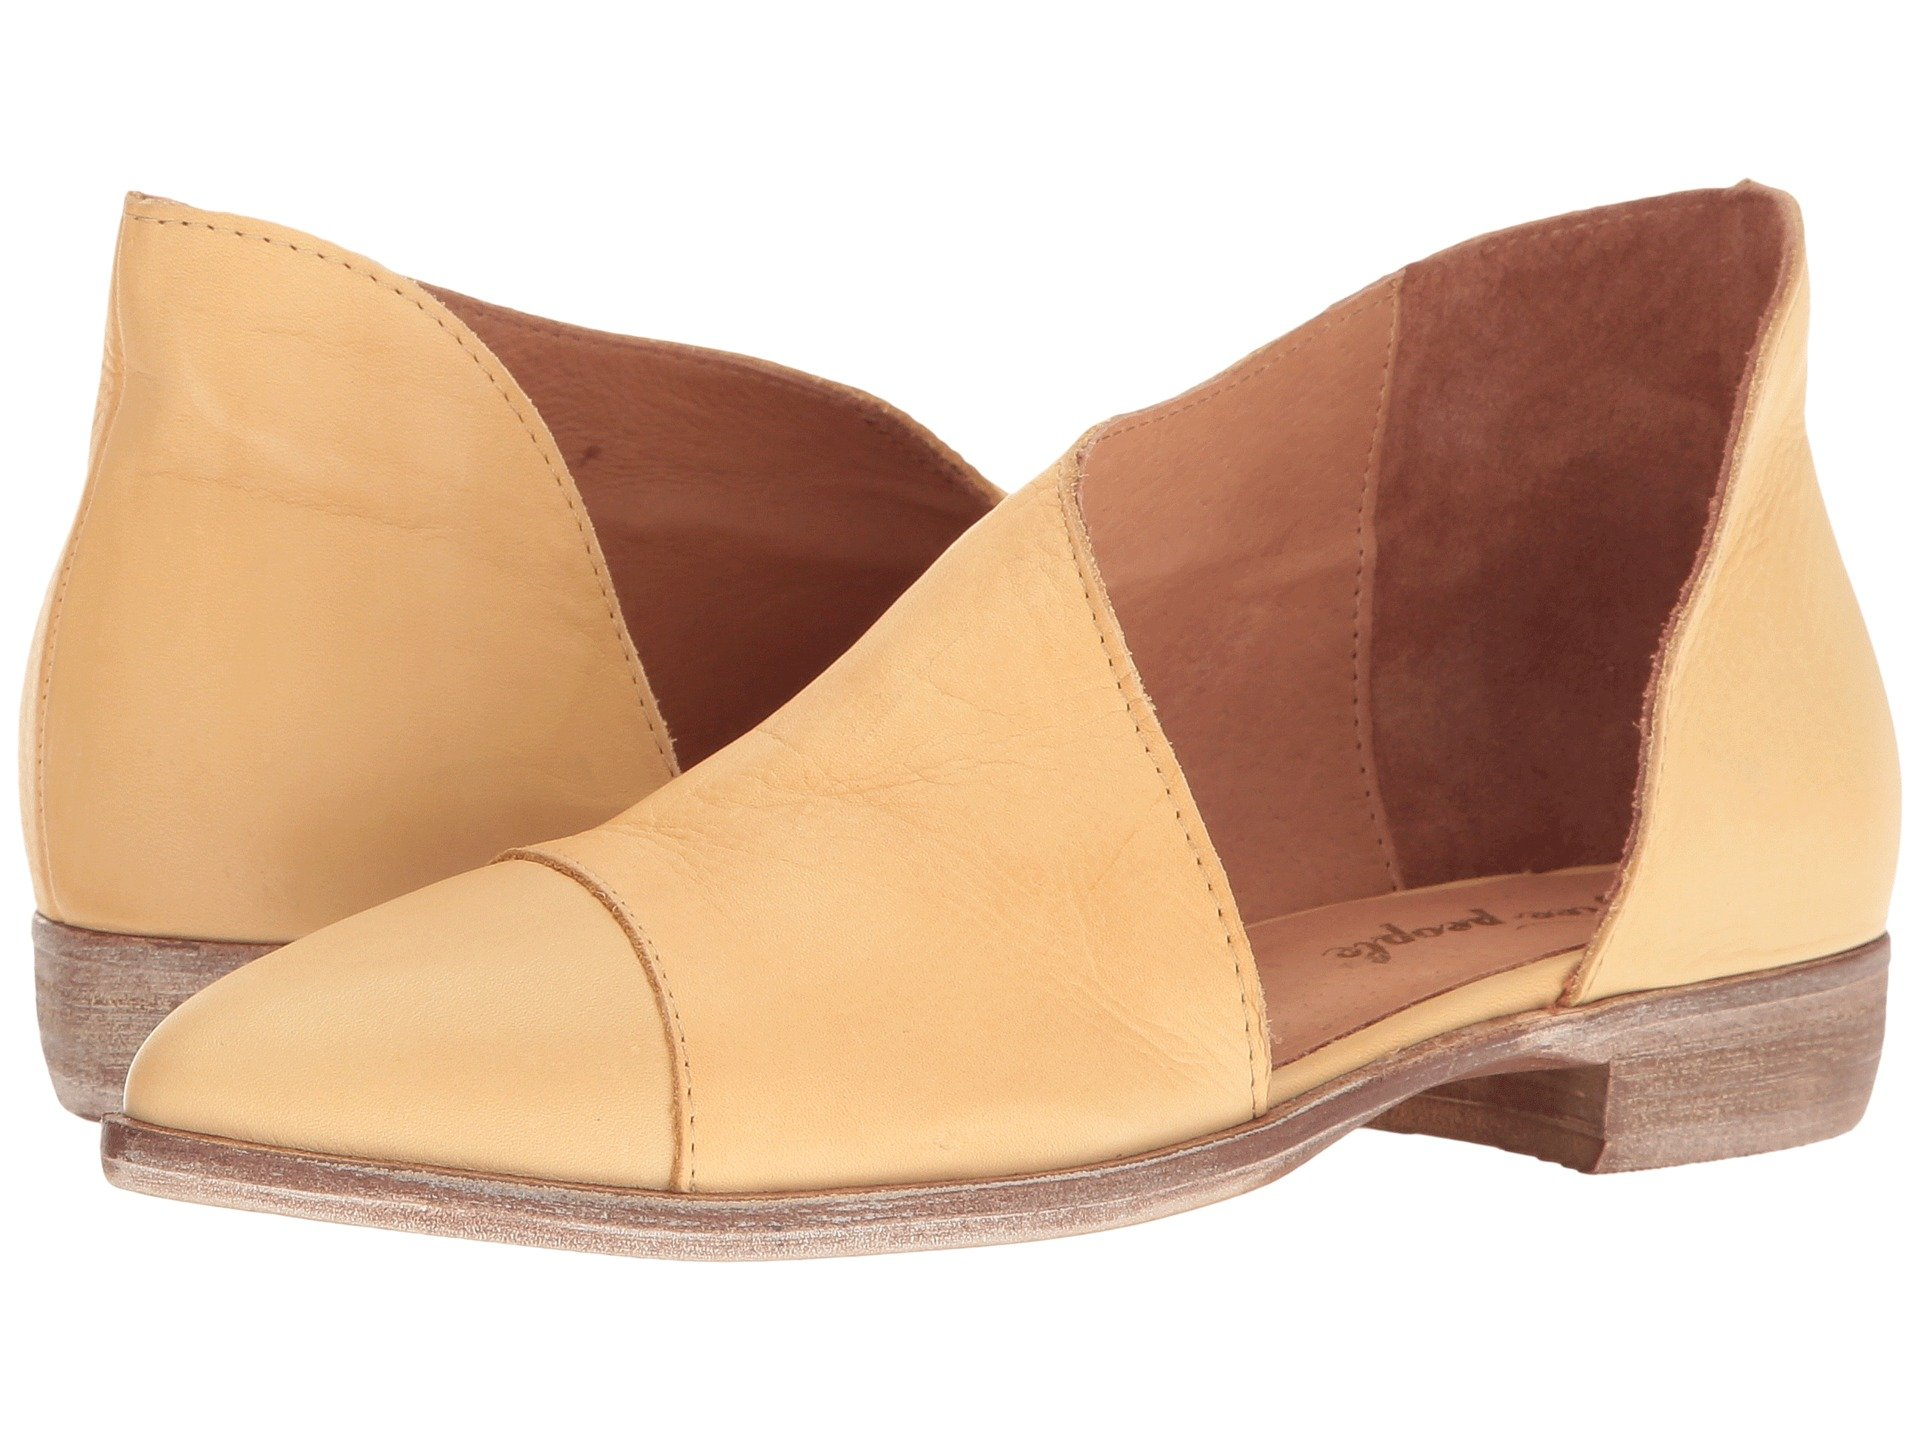 Free People Royale Flat (38 M EU) by Free People (Image #7)